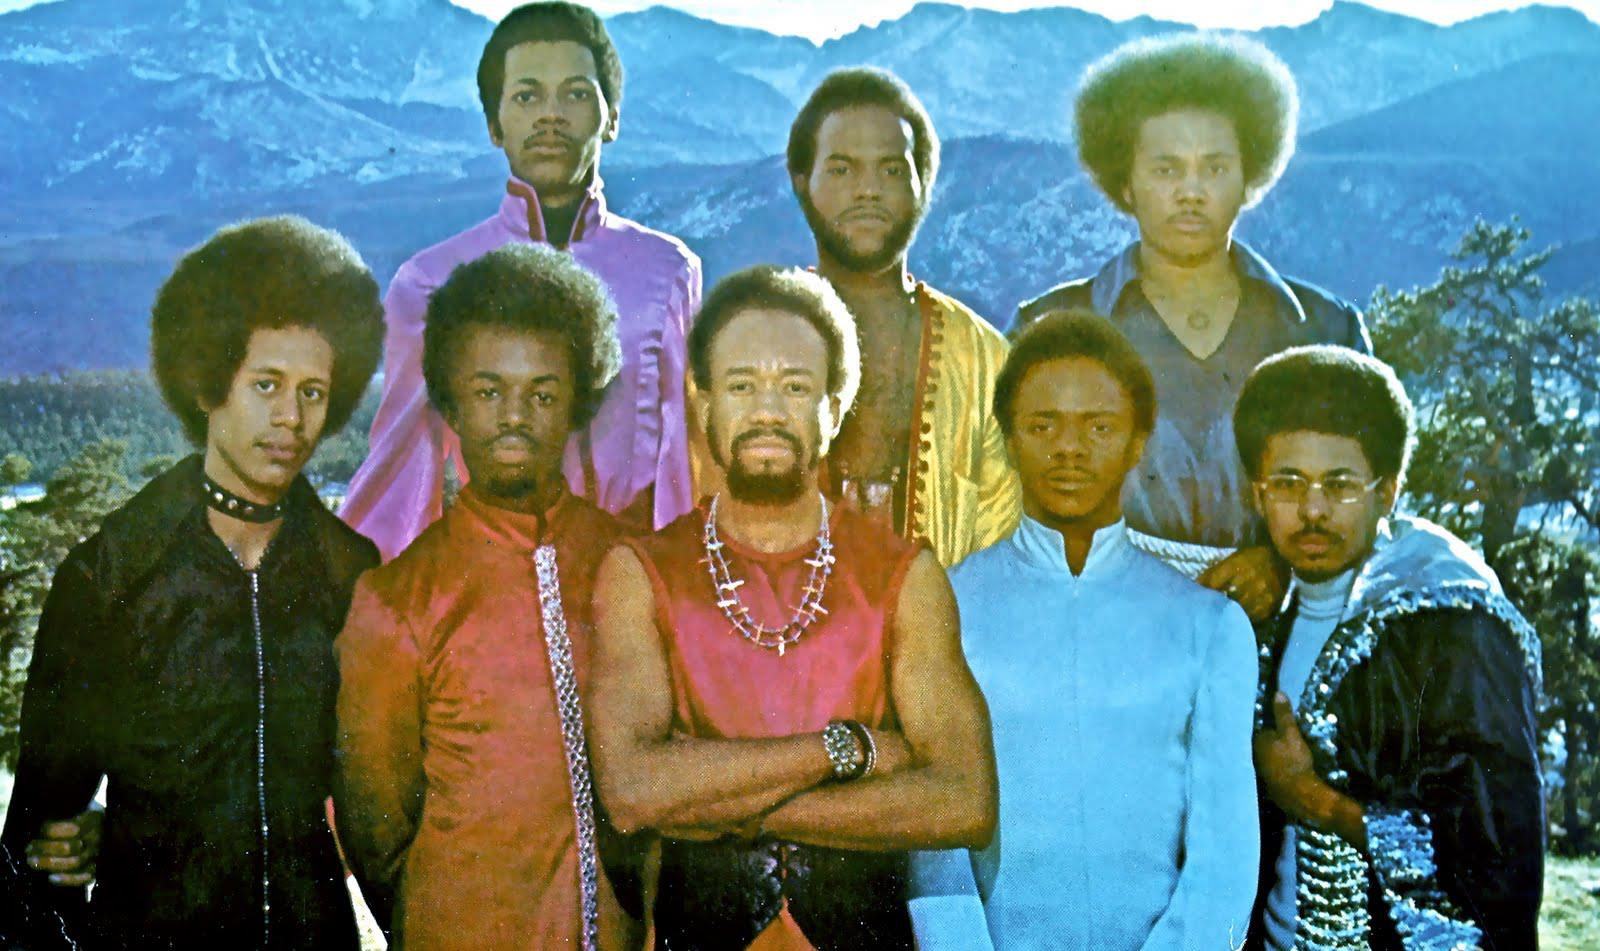 earth wind and fire Kalimba, the country's top tribute to earth wind and fire out of the thousands of other bands that try and play the music of earth wind and fire, kalimba is the show that gets it right.